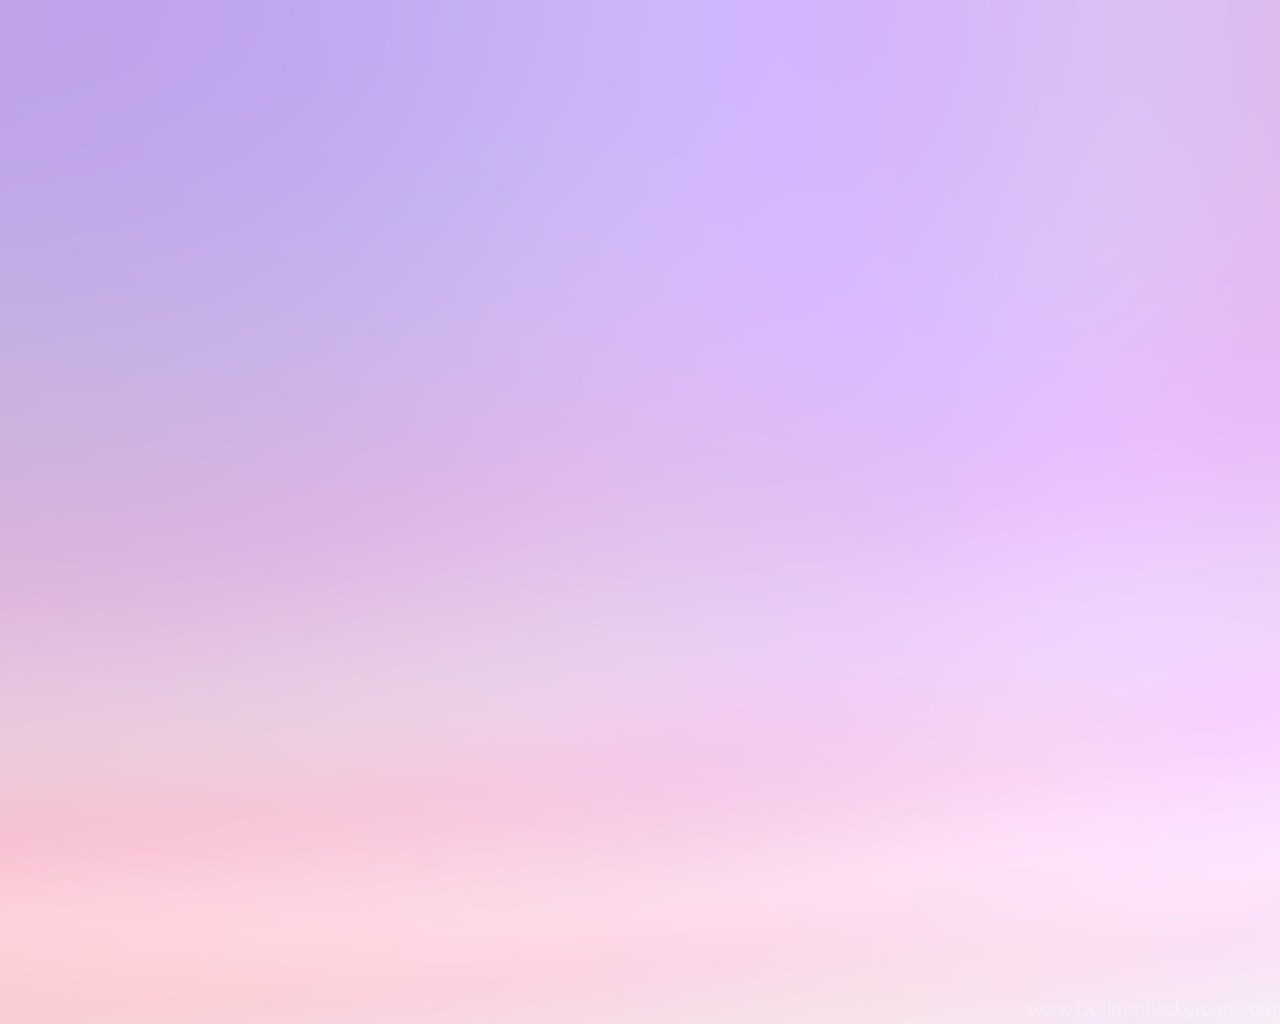 Wallpaper Iphone Purple Pastel Gradient Backgrounds Tumblr Wallpaper Desktop